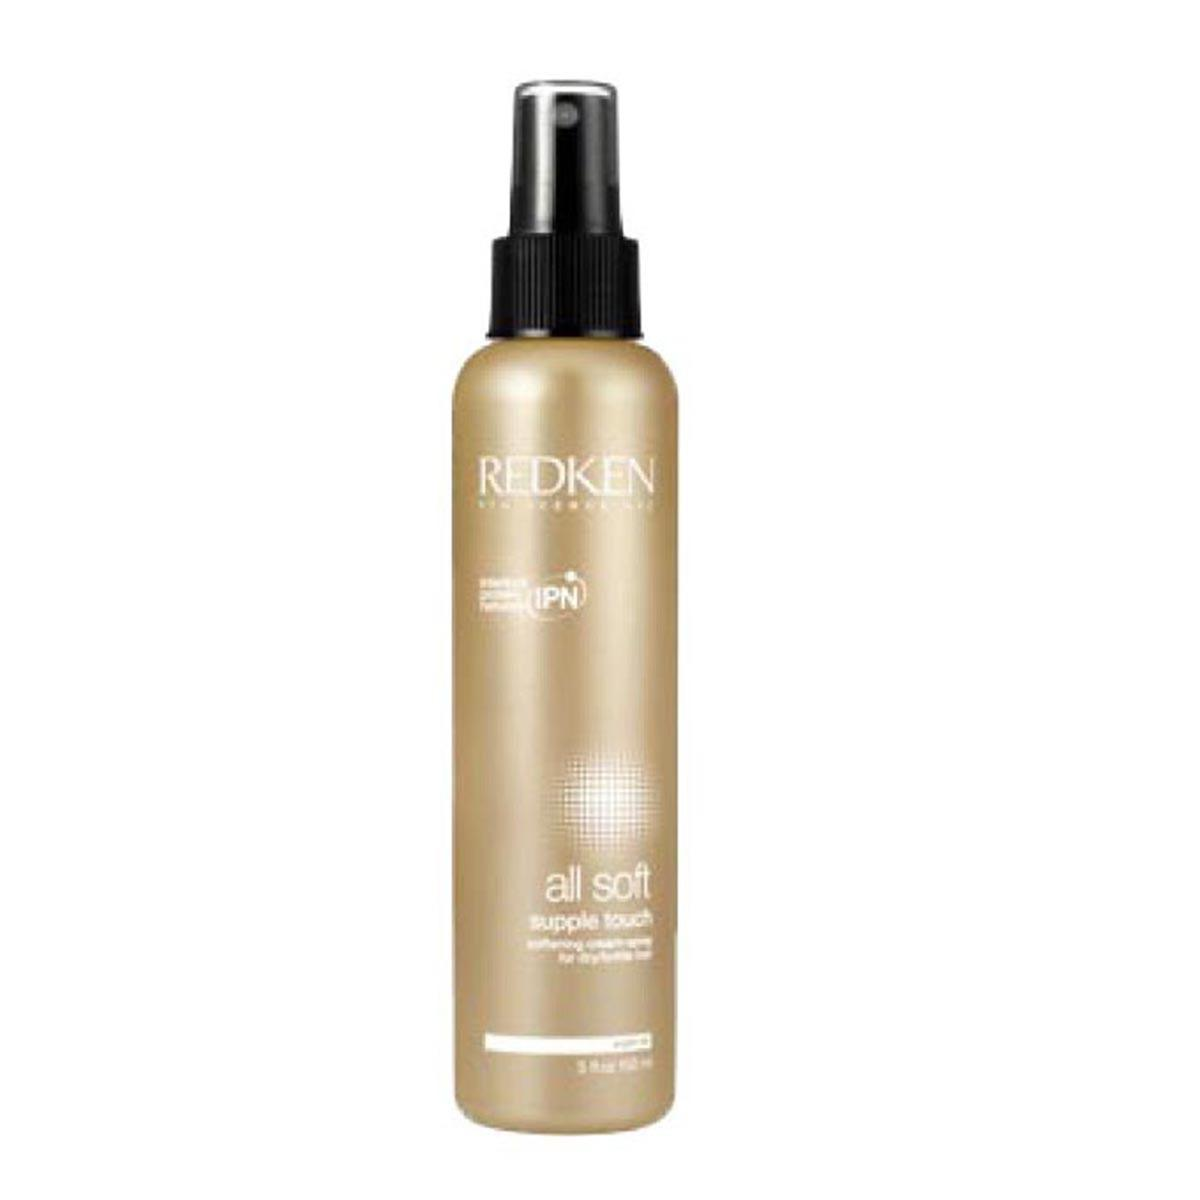 Redken fragrances All Soft Supple Touch Treatment 150ml